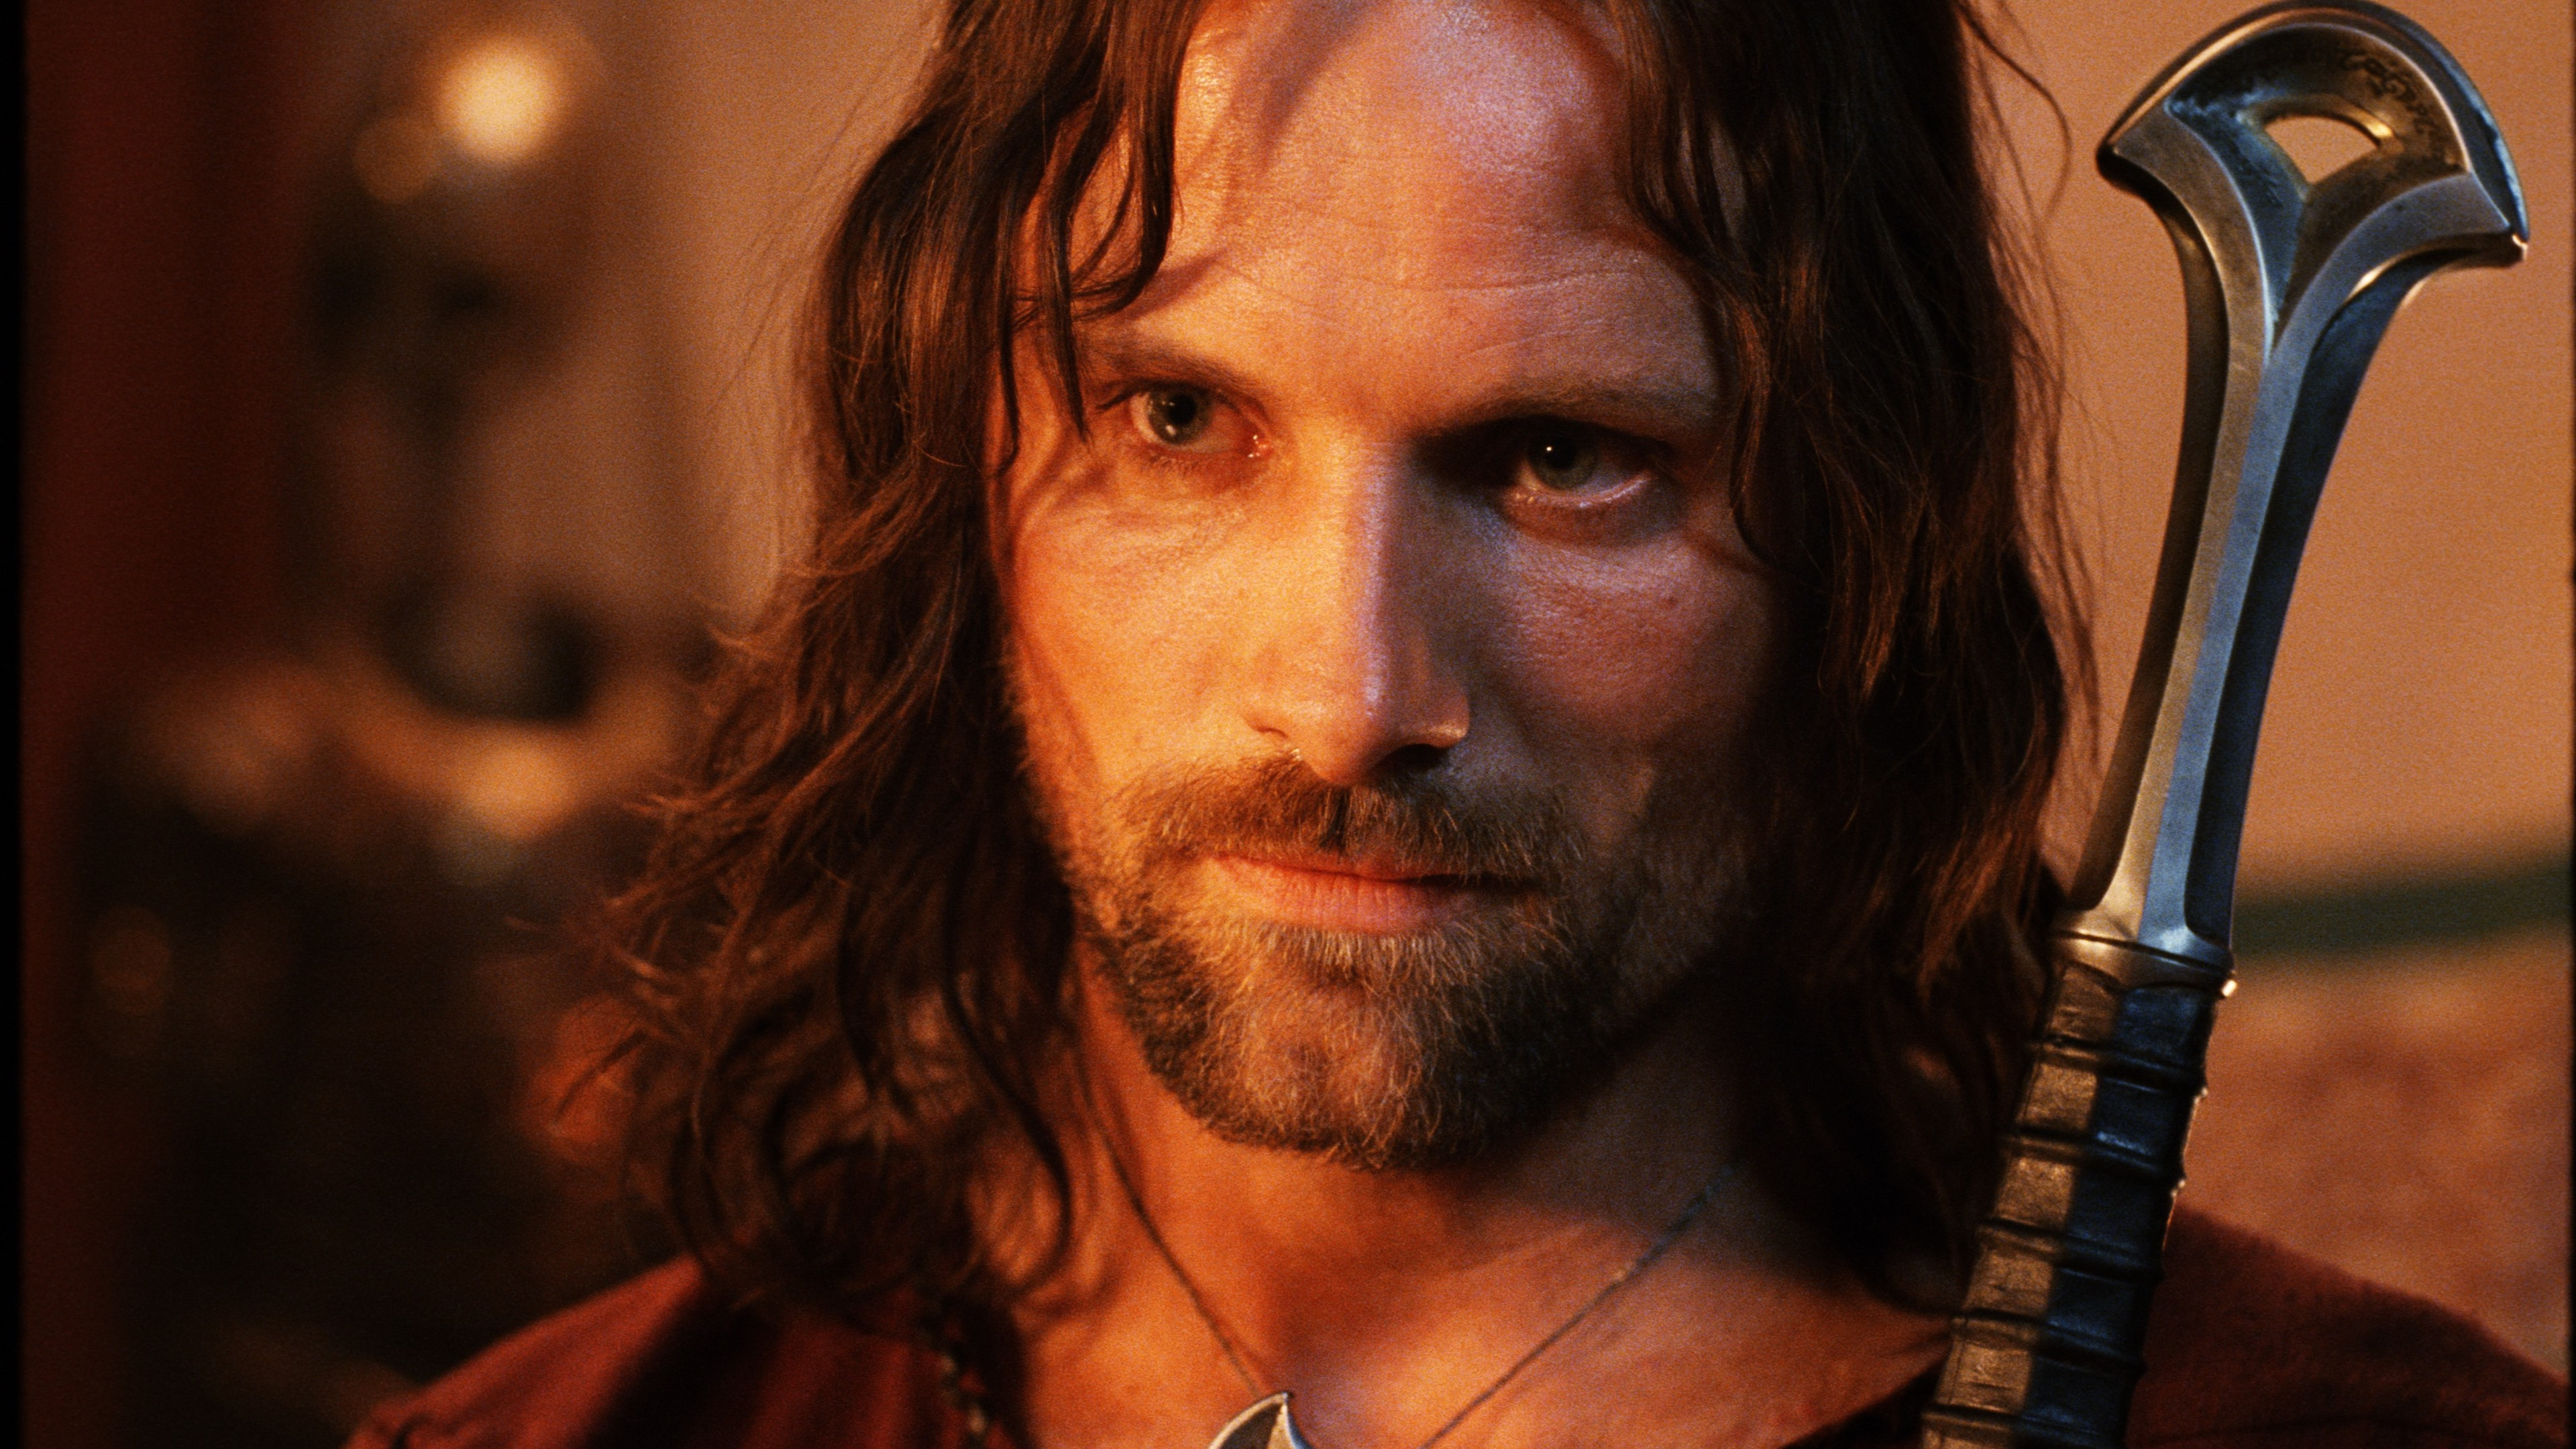 Wallpaper Aragorn Lord Of The Rings 3840x2160 Uhd 4k Picture Image